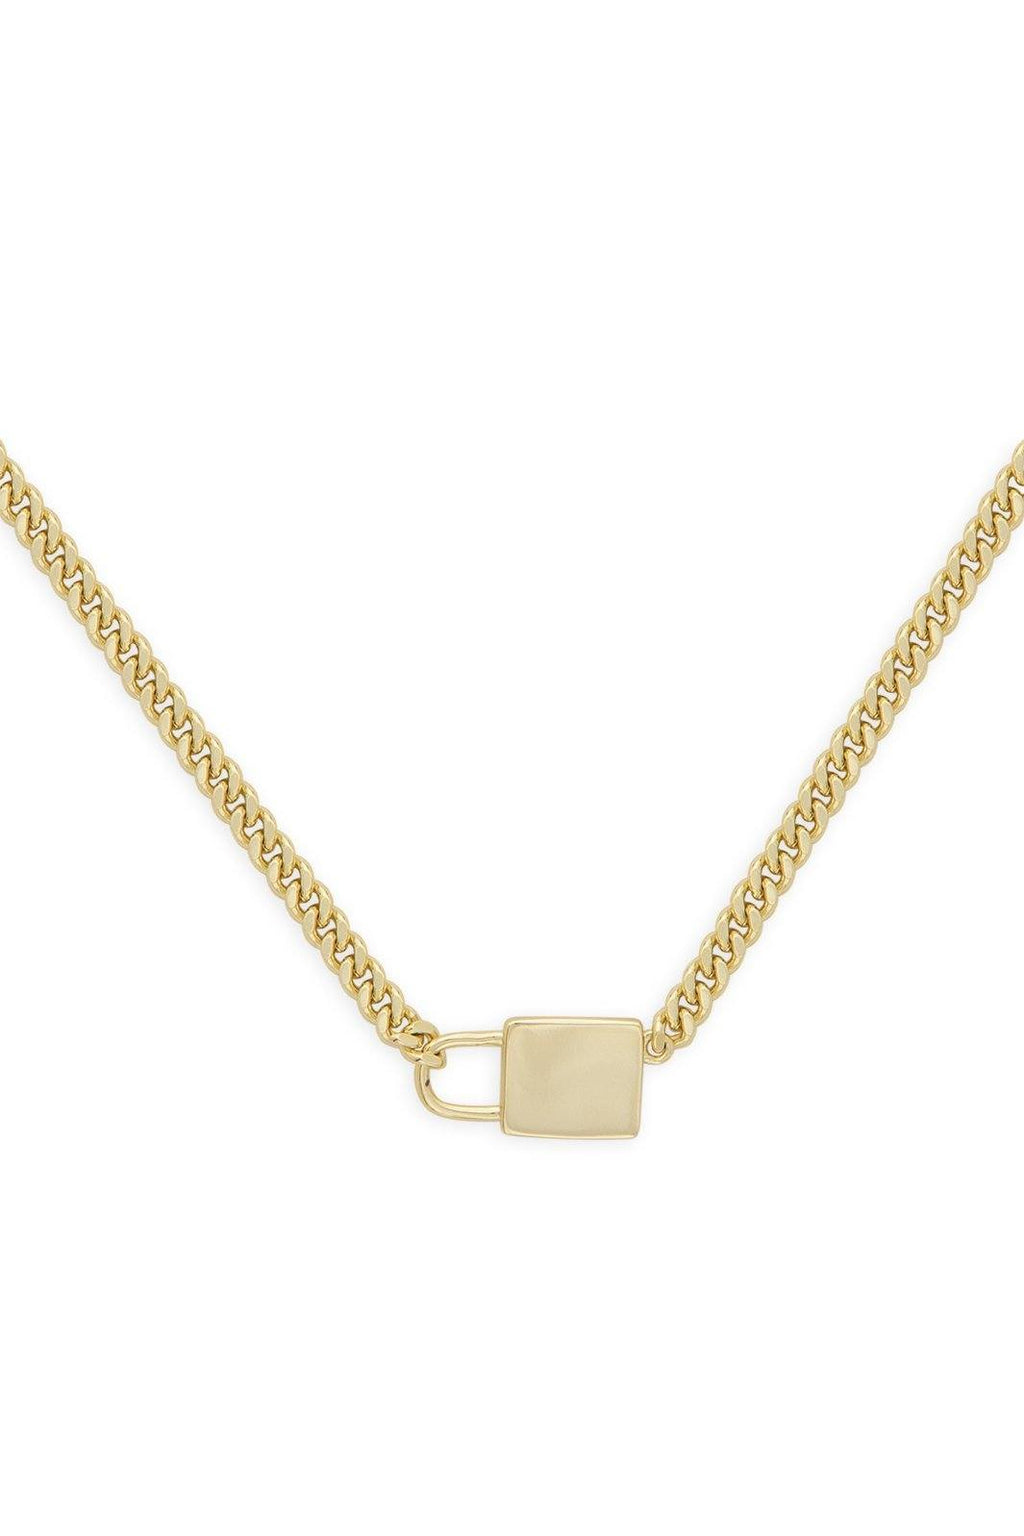 ASHLEY CHILDERS | Lock & Chain Necklace